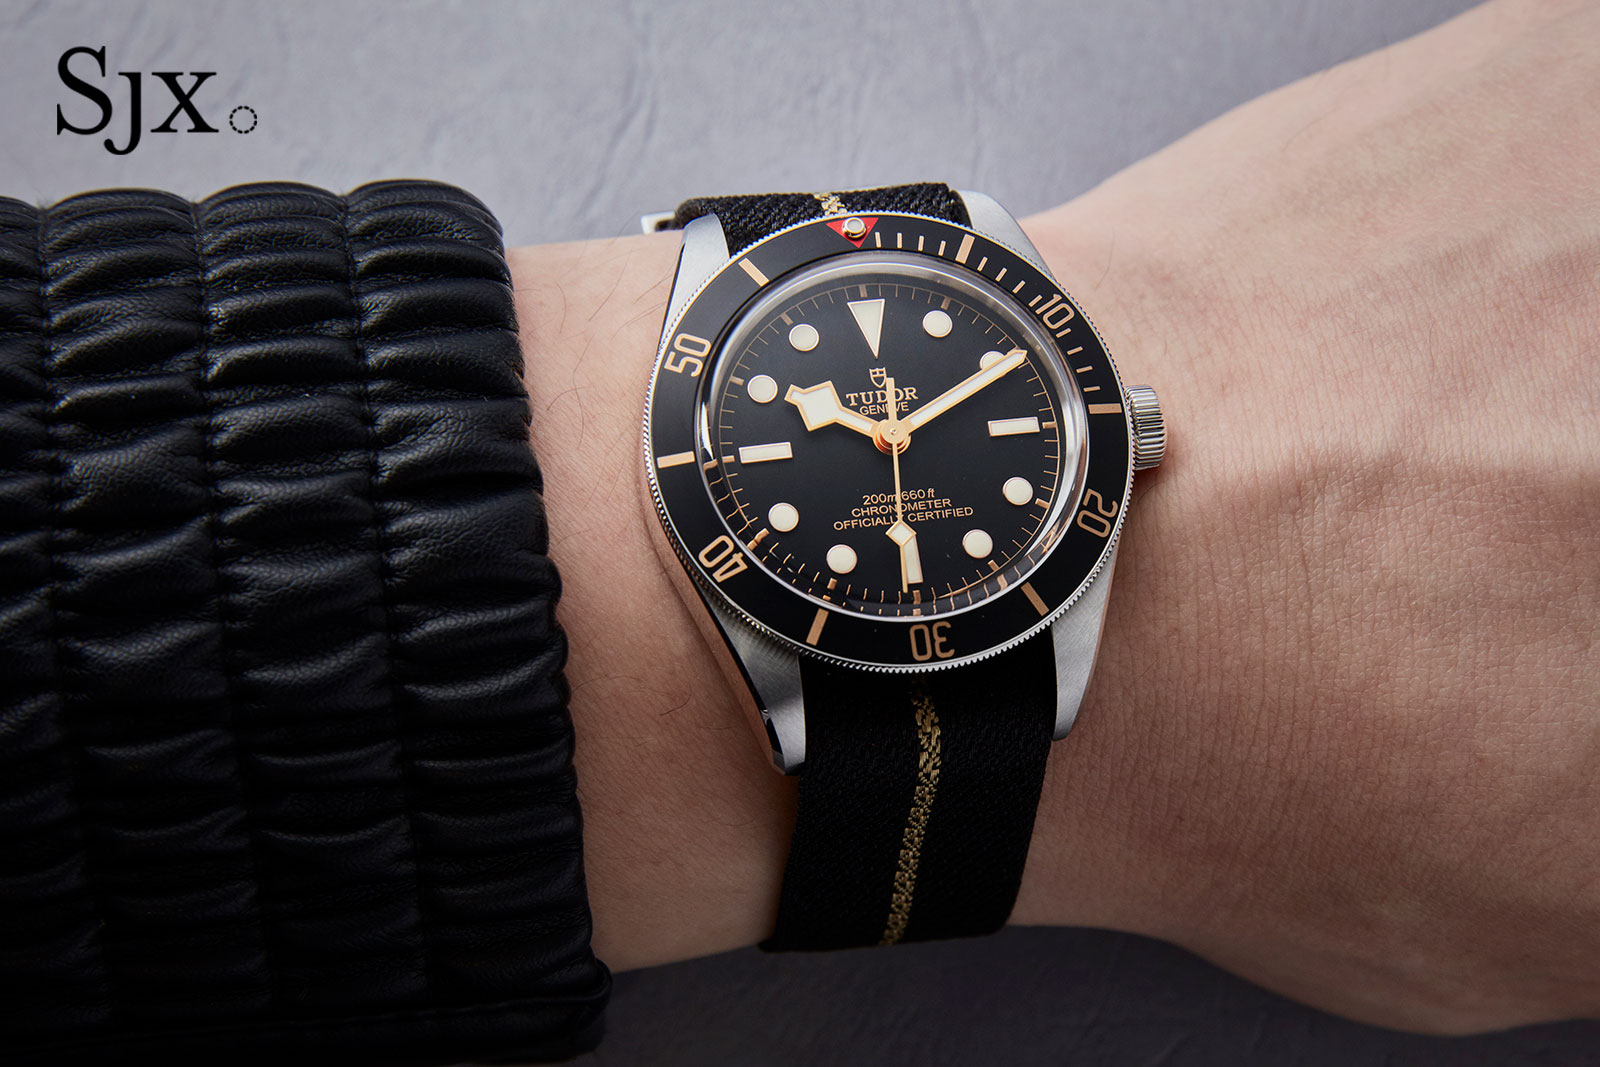 Tudor Black Bay 79030n NATO FABRIC STRAP